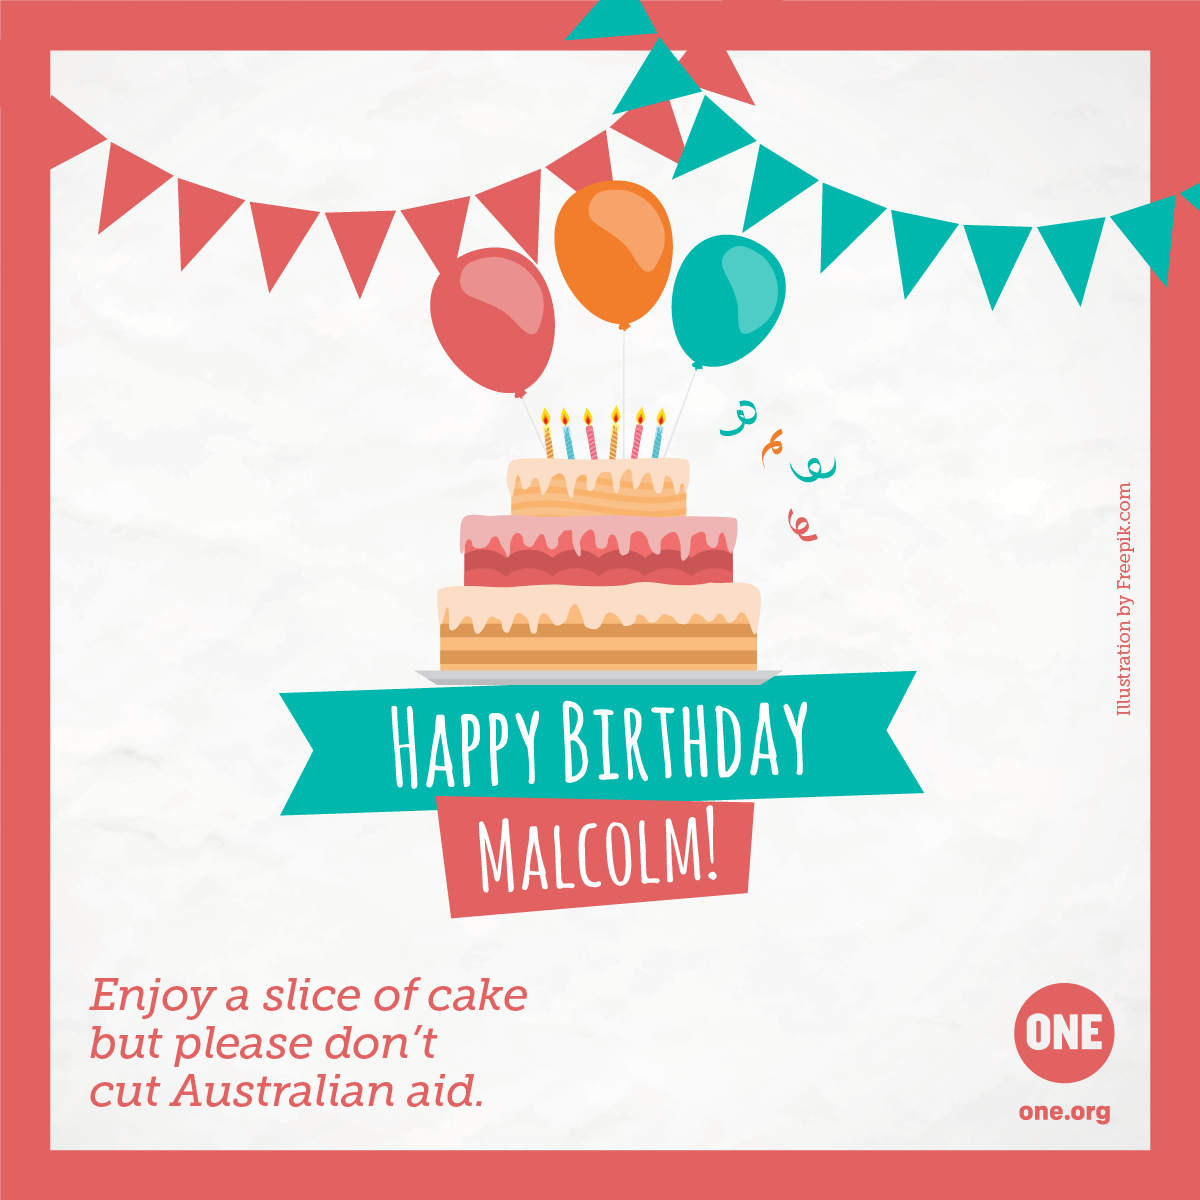 YOUR Birthday Messages To Australia PM Malcolm Turnbull